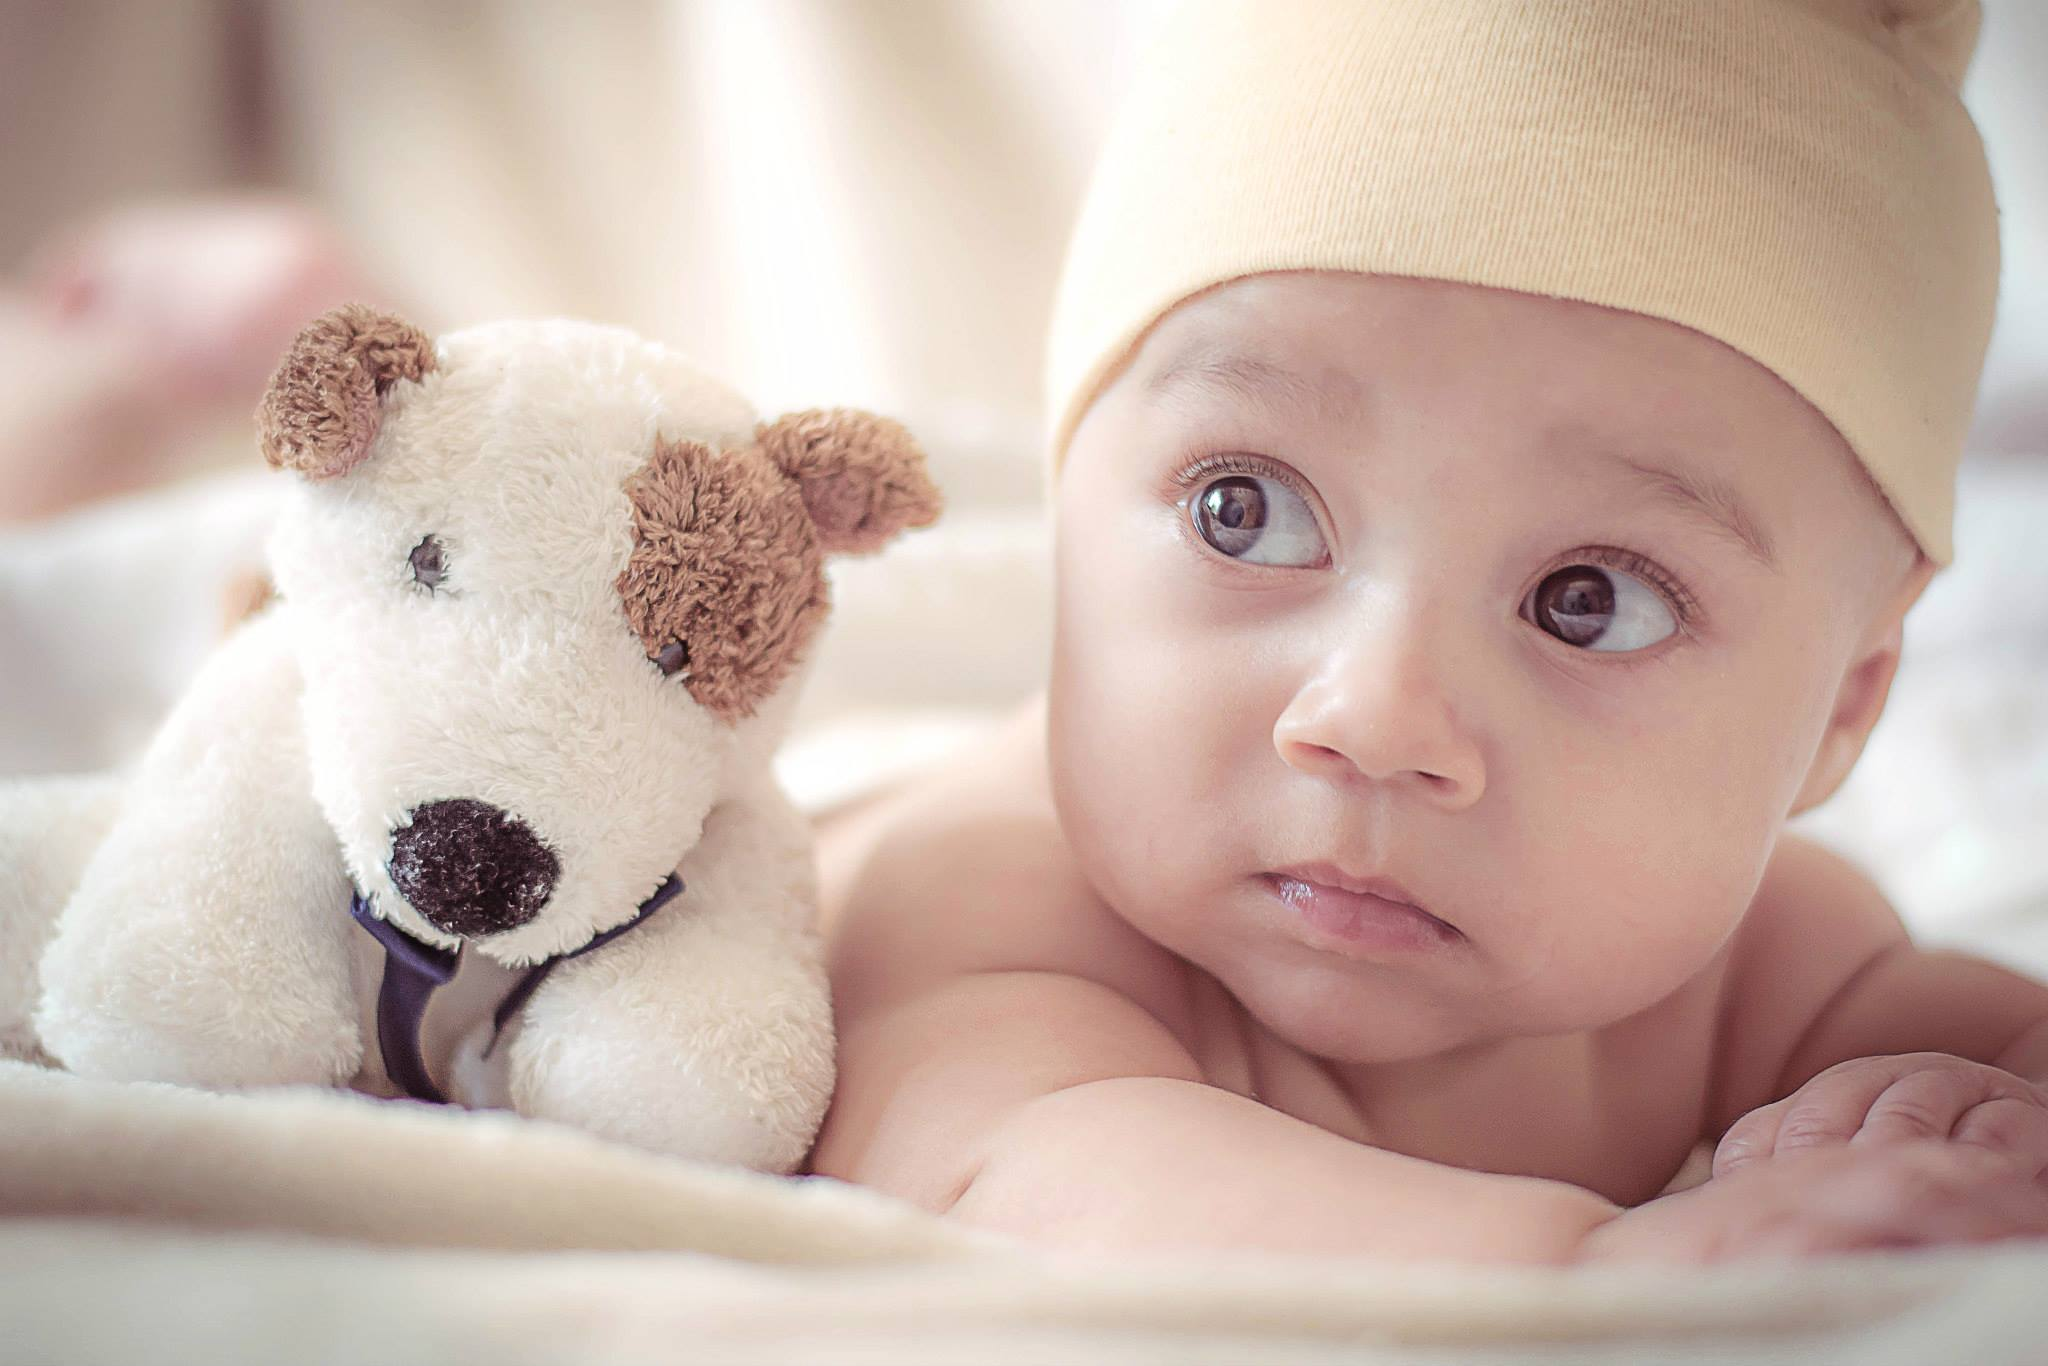 A baby lies next to a stuffed toy.